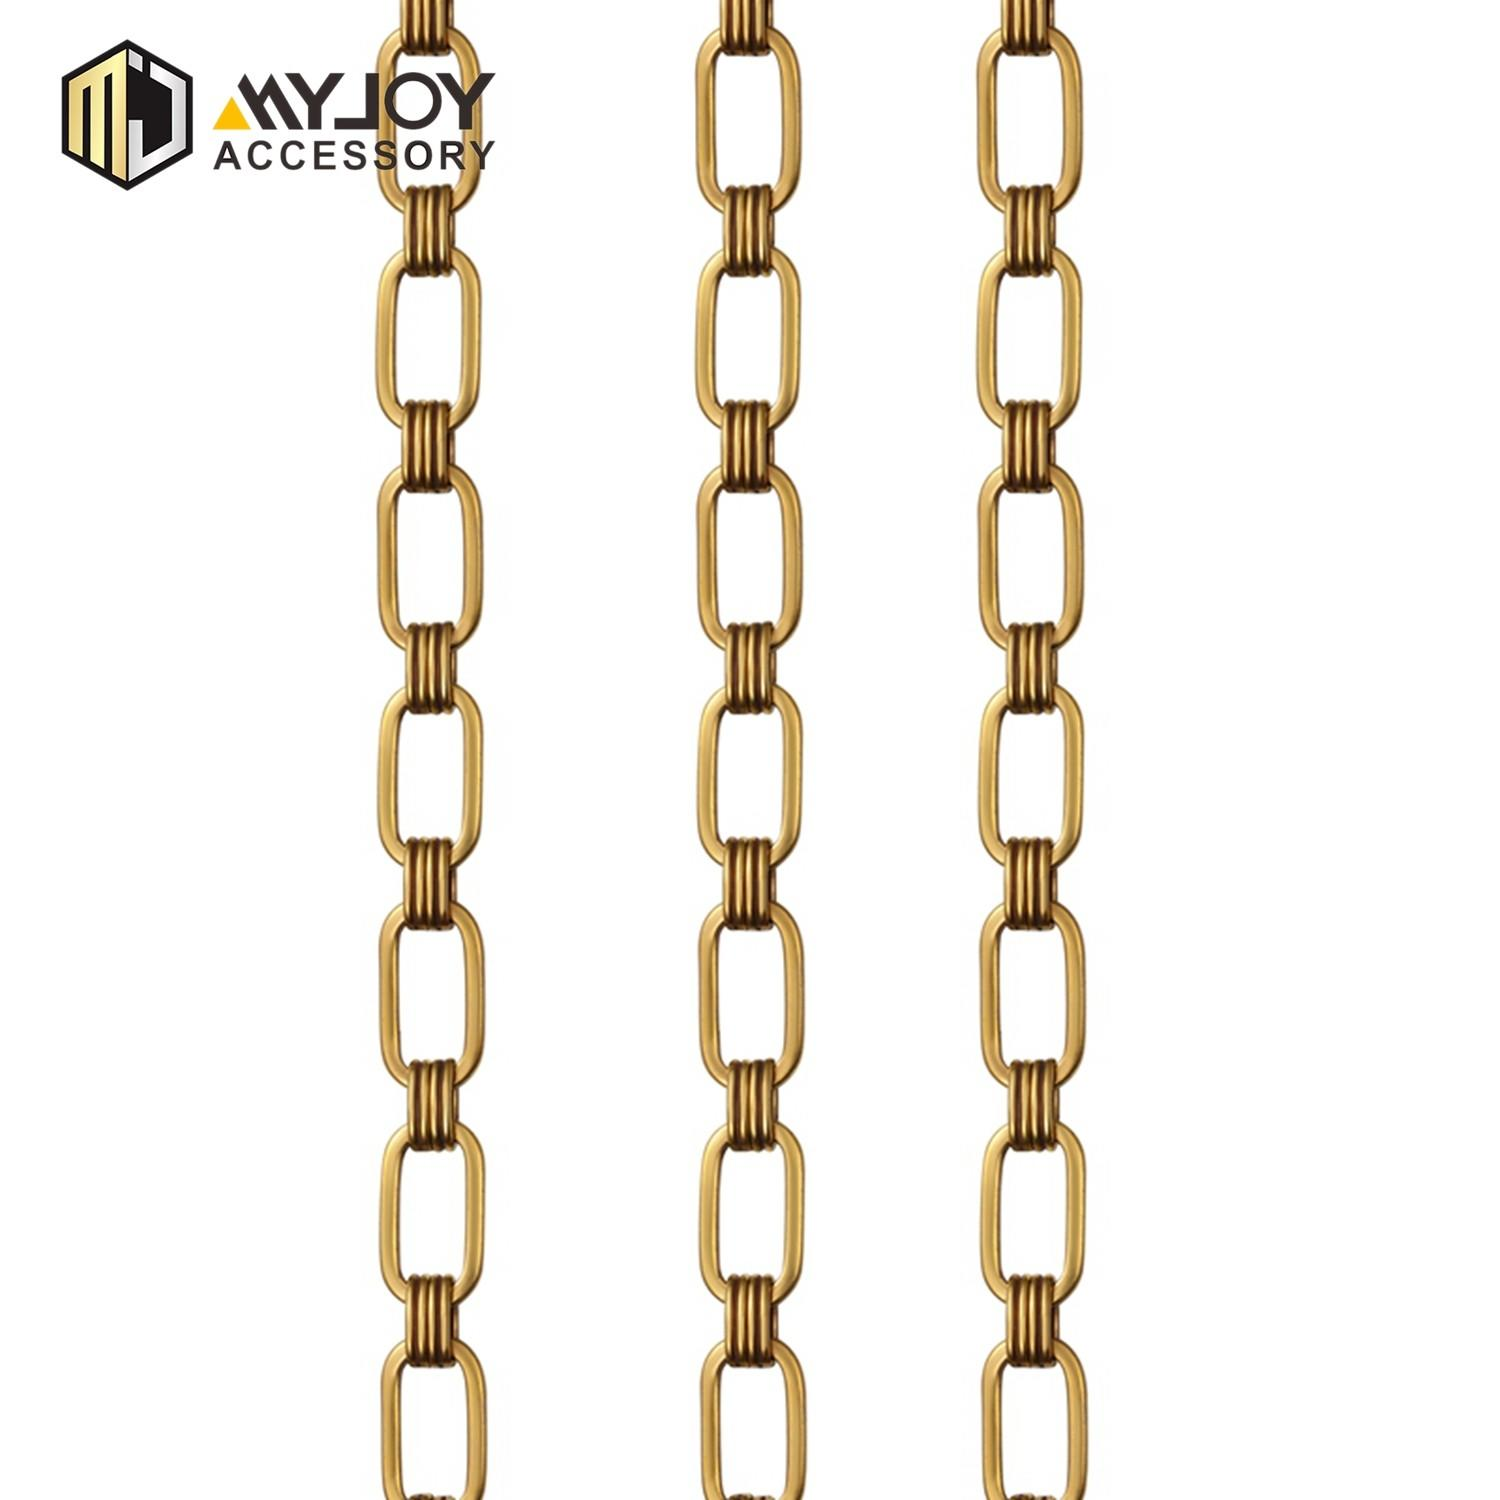 MYJOY High-quality chain strap supply for bags-2